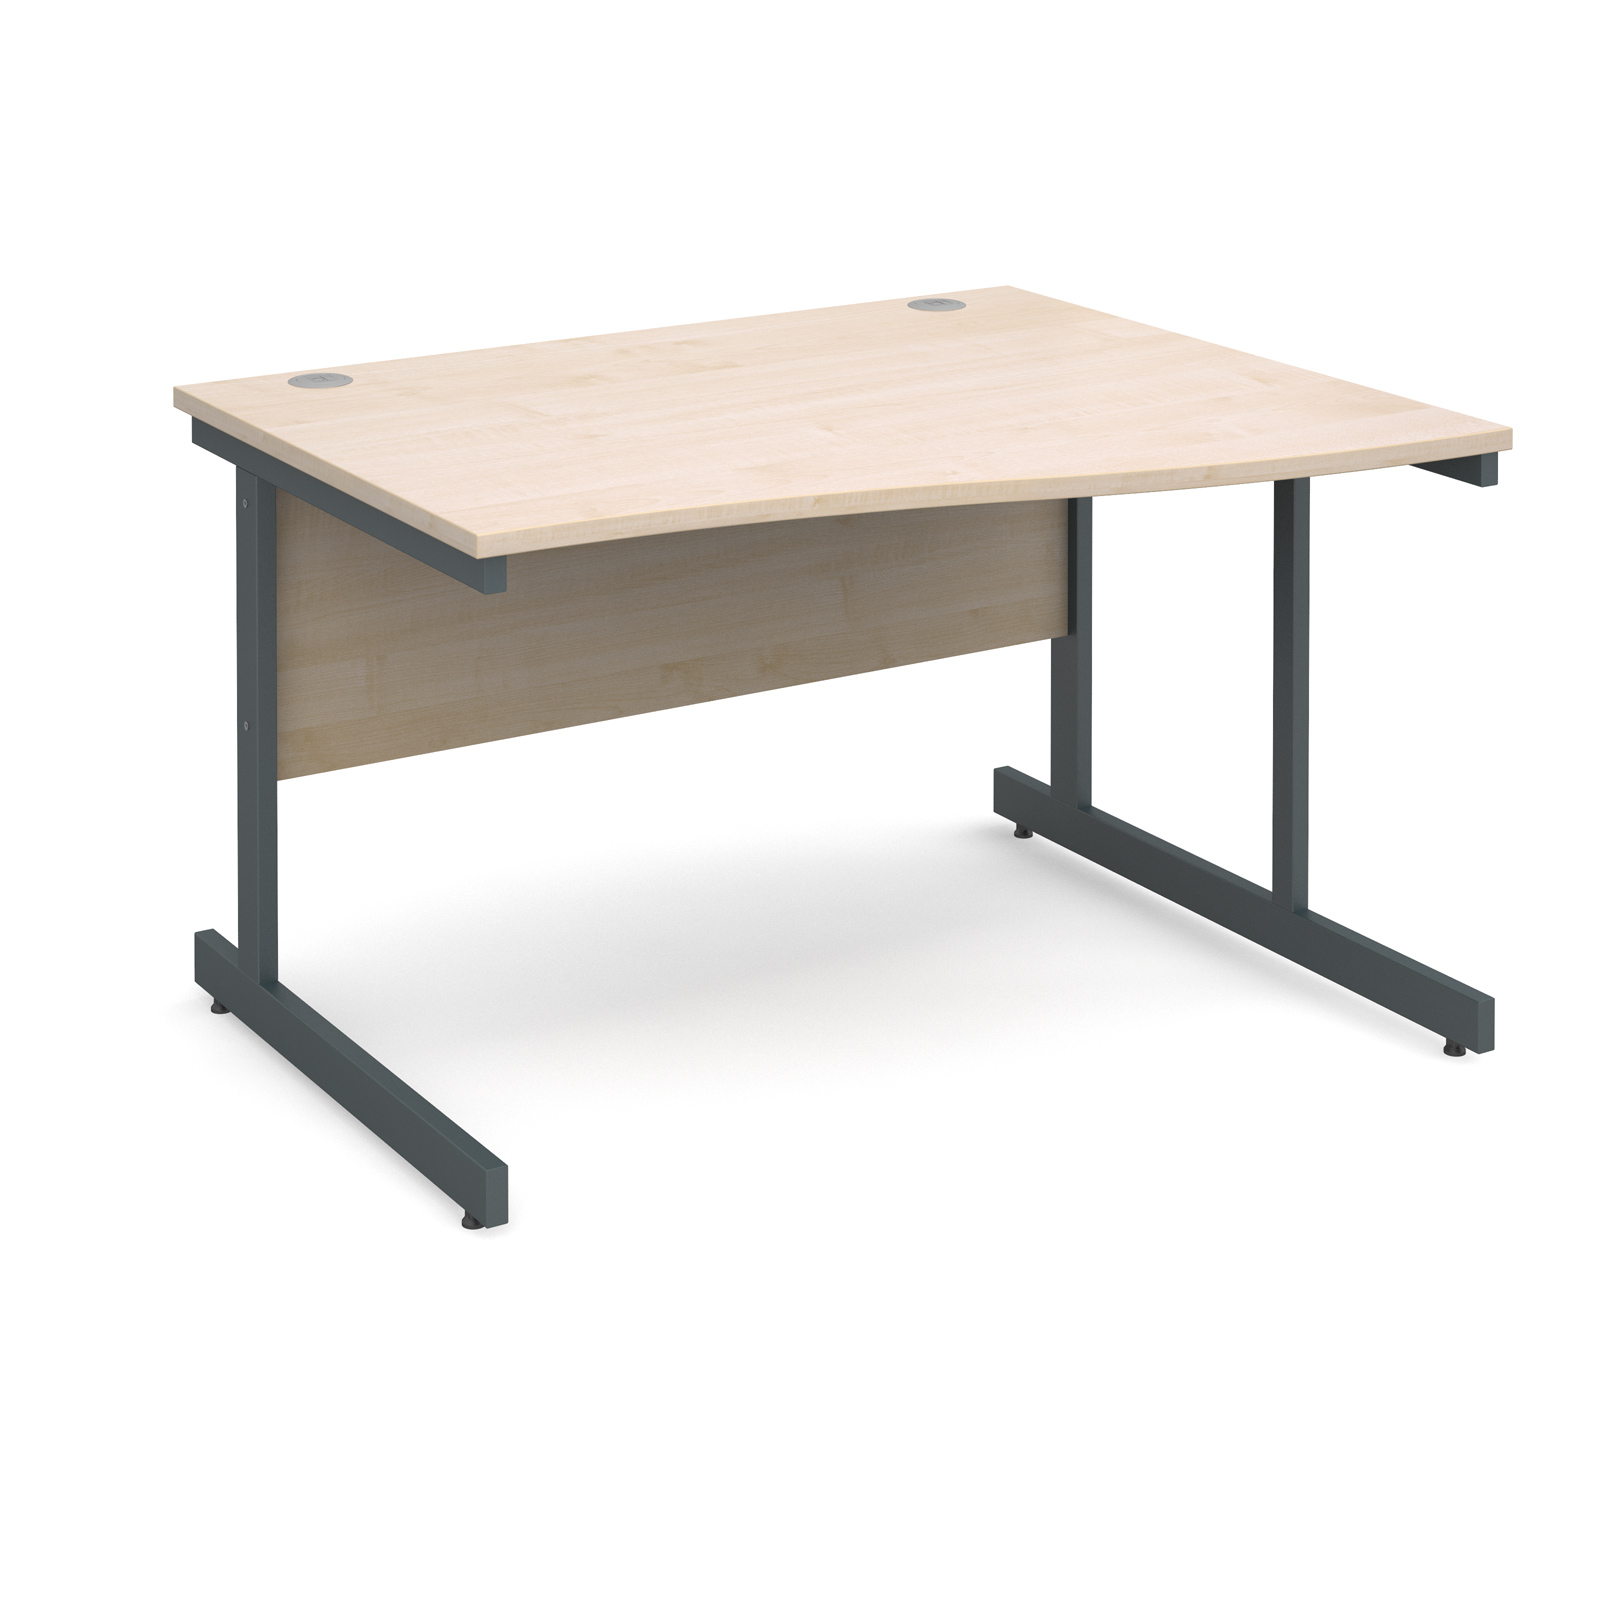 Contract 25 right hand wave desk 1200mm - graphite cantilever frame, maple top